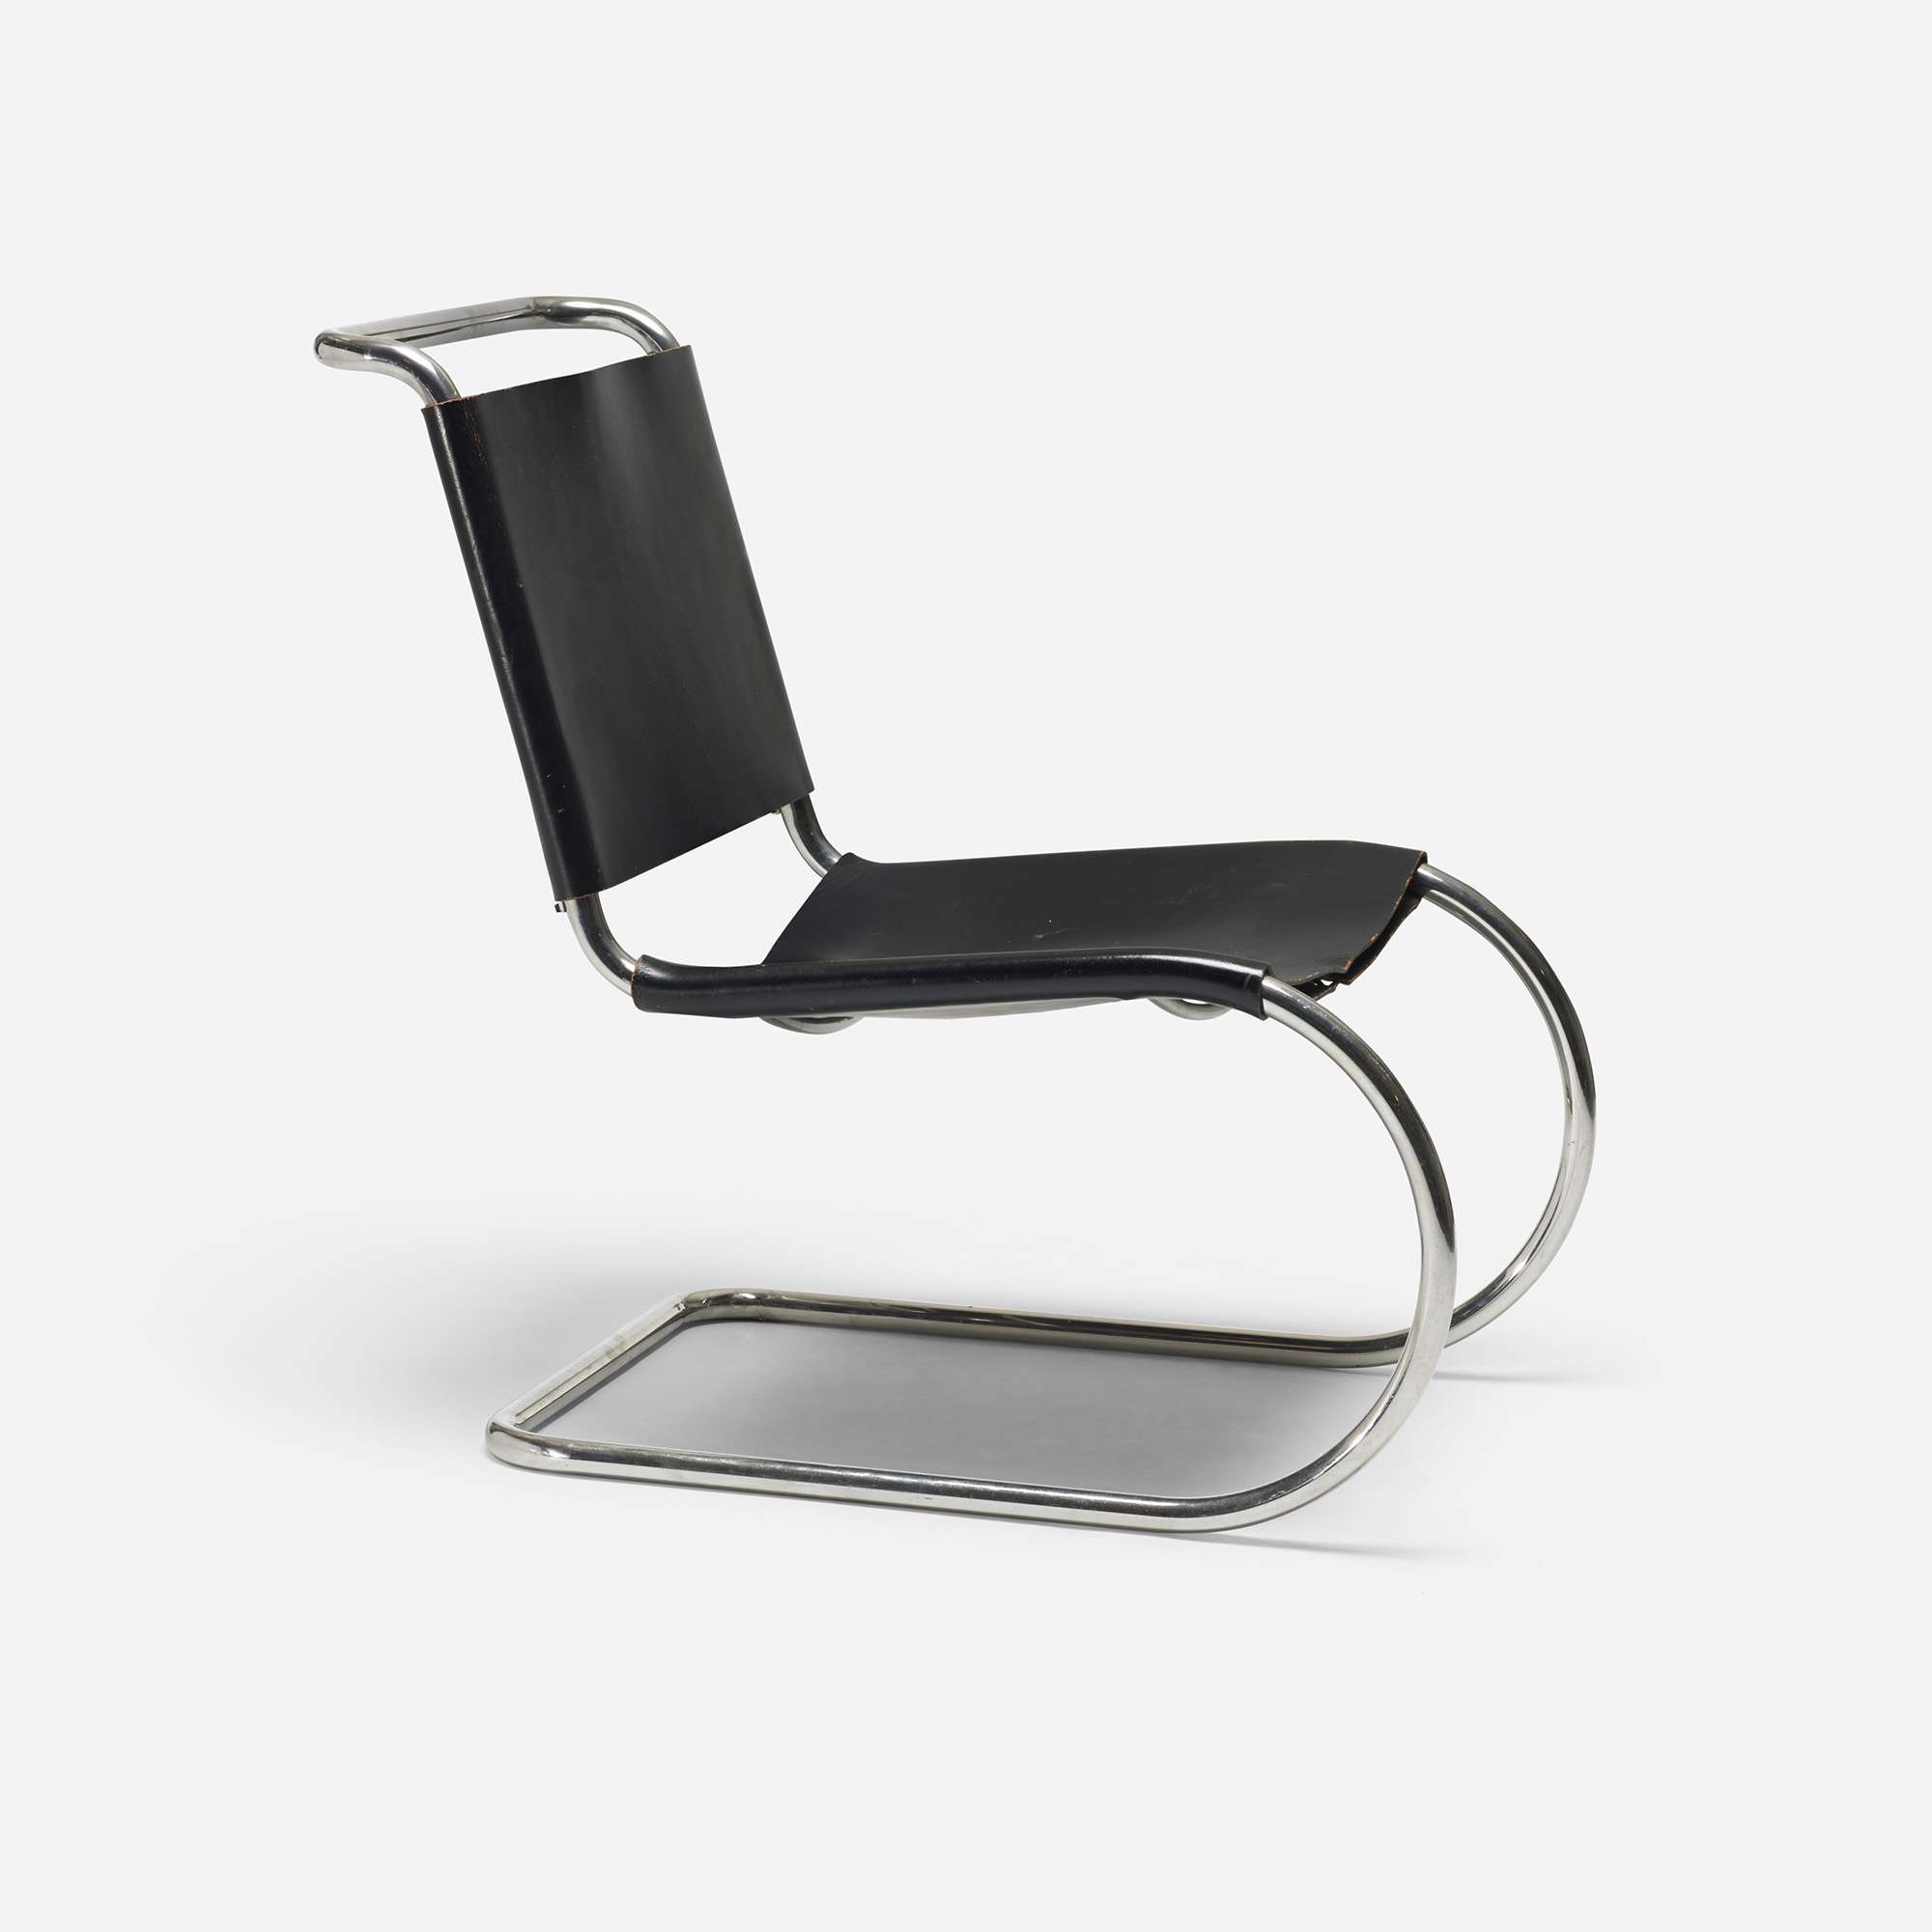 Wondrous 381 Ludwig Mies Van Der Rohe Mr 10 Lounge Chair Mass Squirreltailoven Fun Painted Chair Ideas Images Squirreltailovenorg